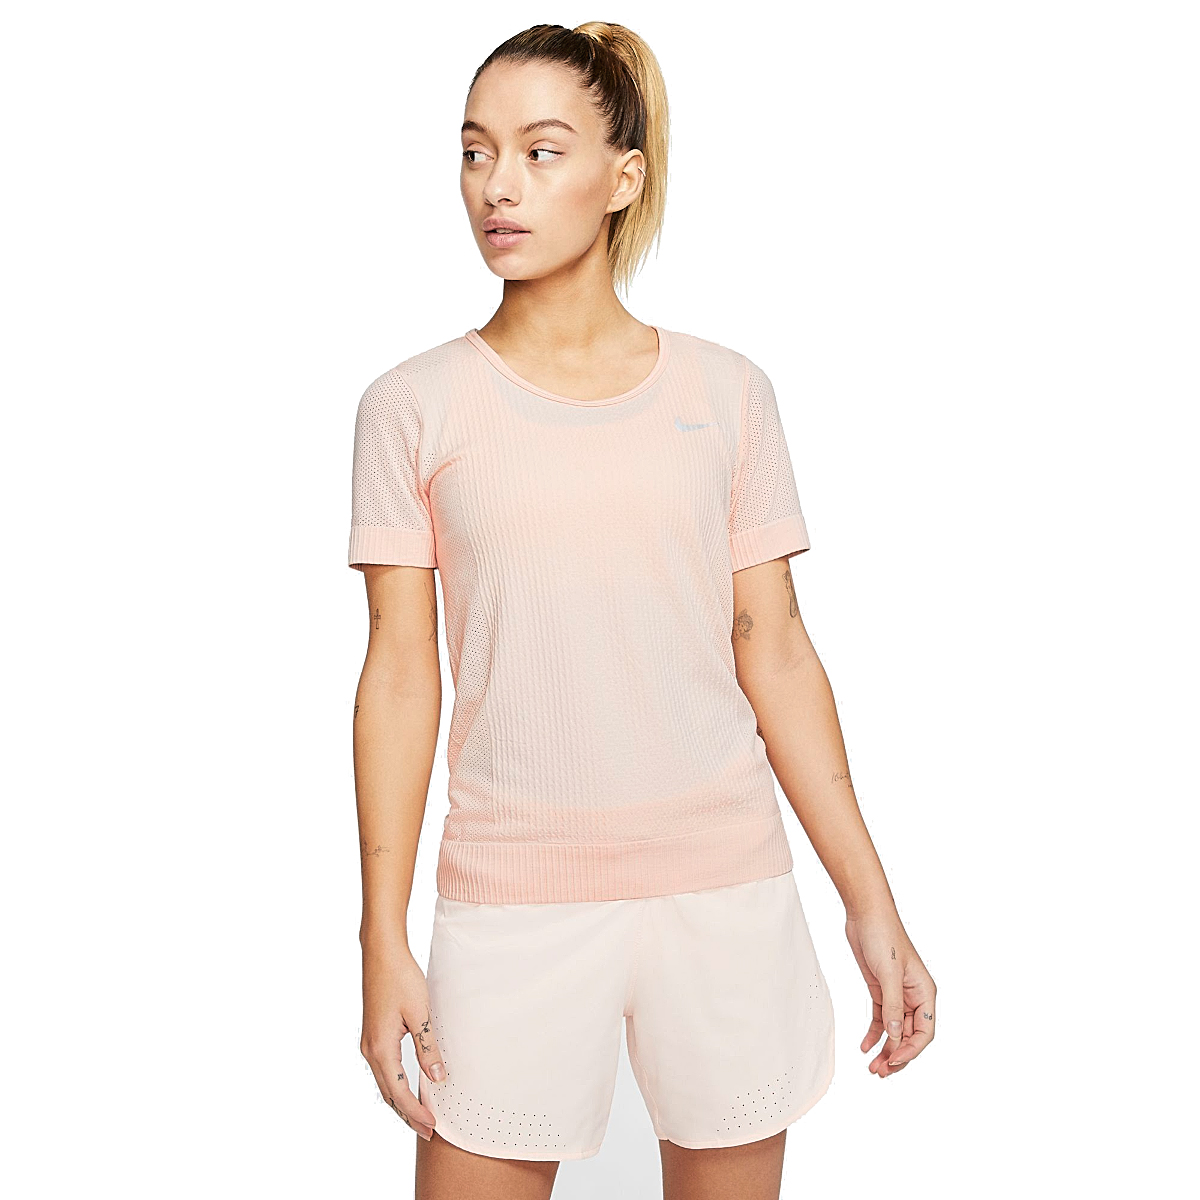 Women's Nike Infinite Short-Sleeve - Color: Washed Coral - Size: XS, Washed Coral, large, image 1